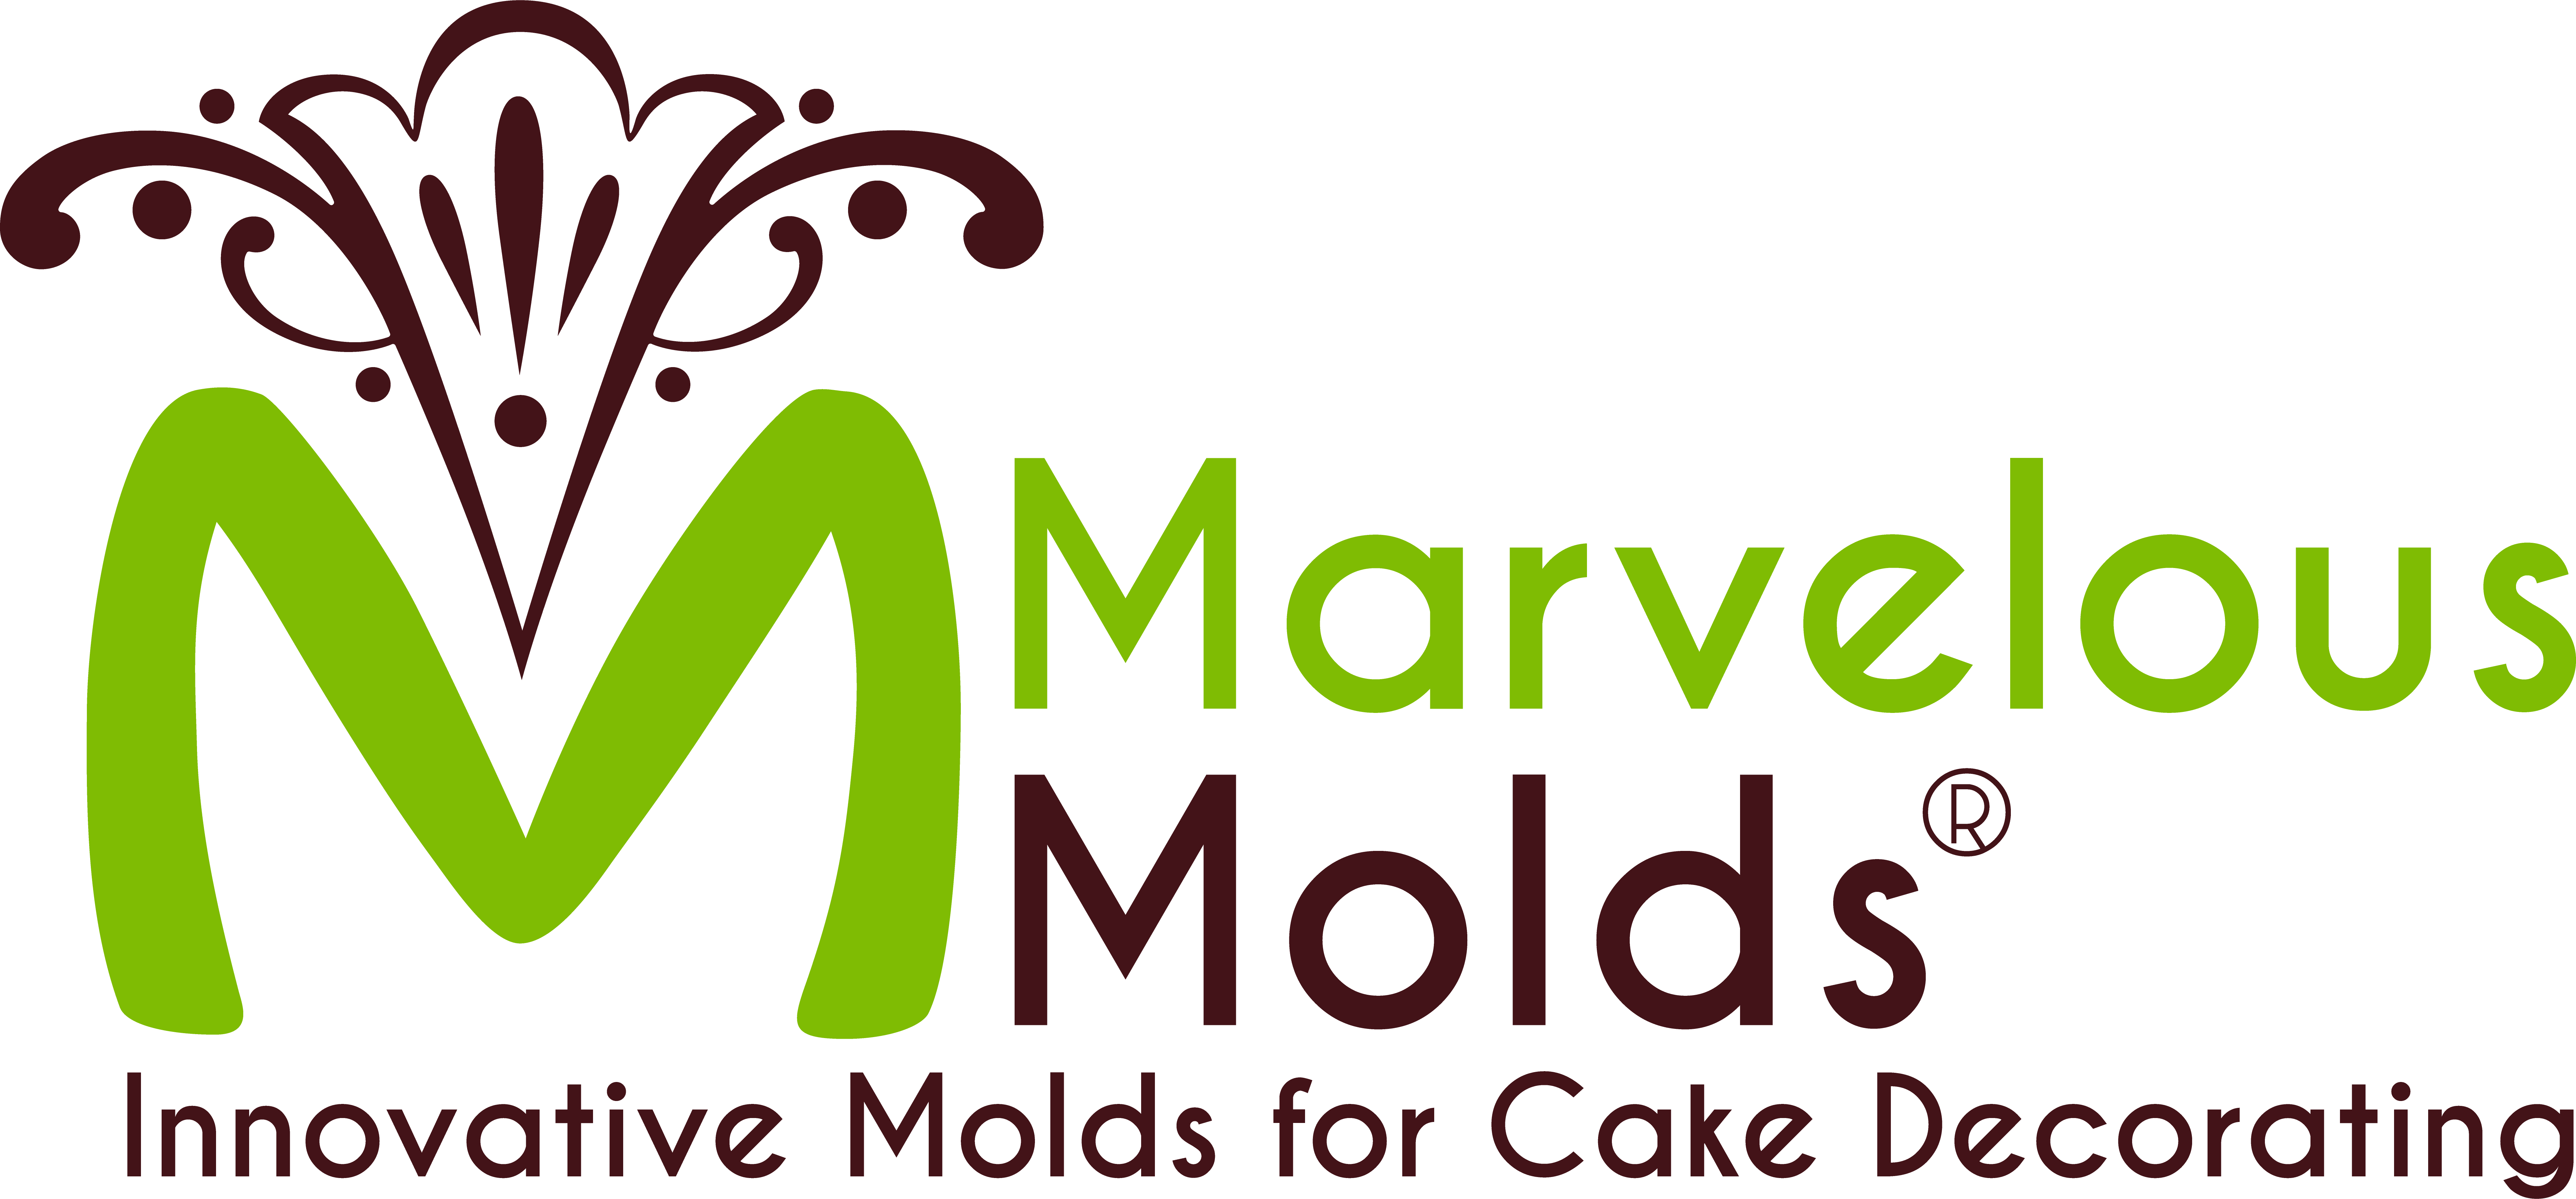 Marvelous Molds logo